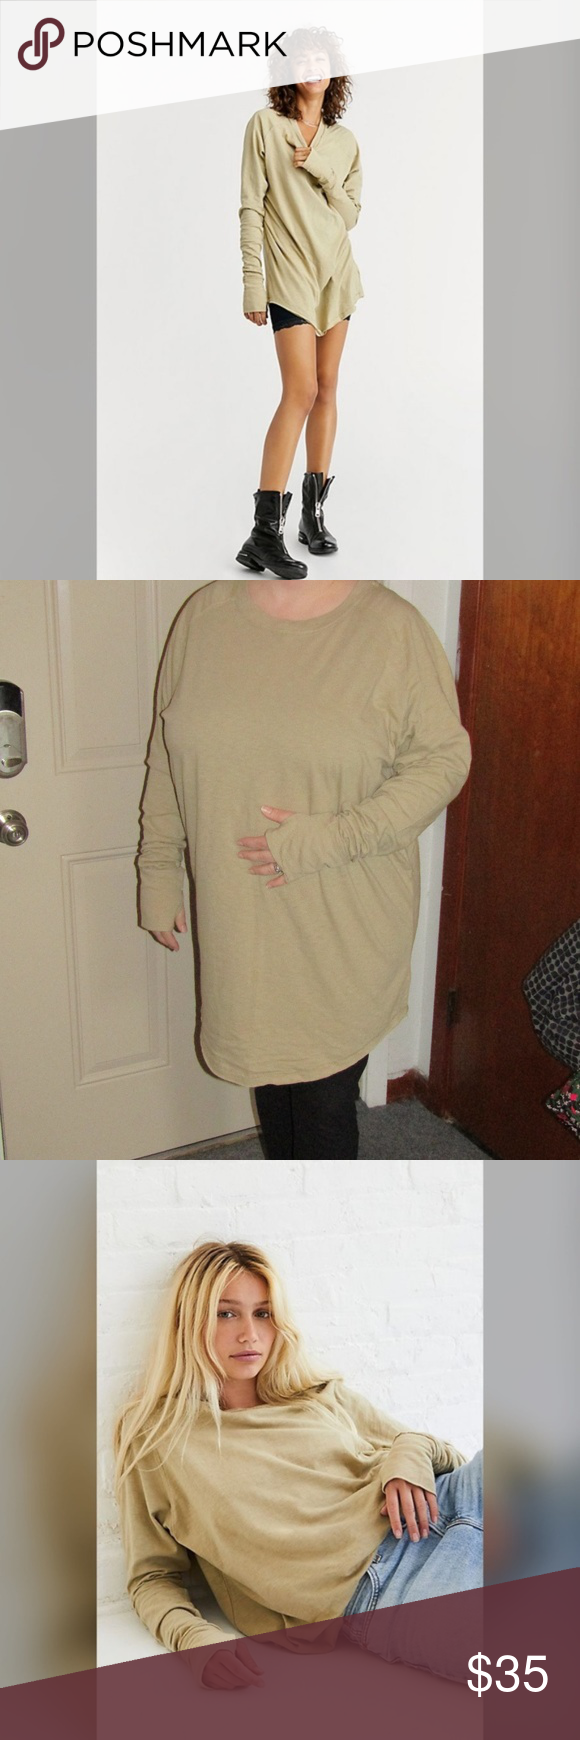 XL left! Free People Arden Moss Tee Free People